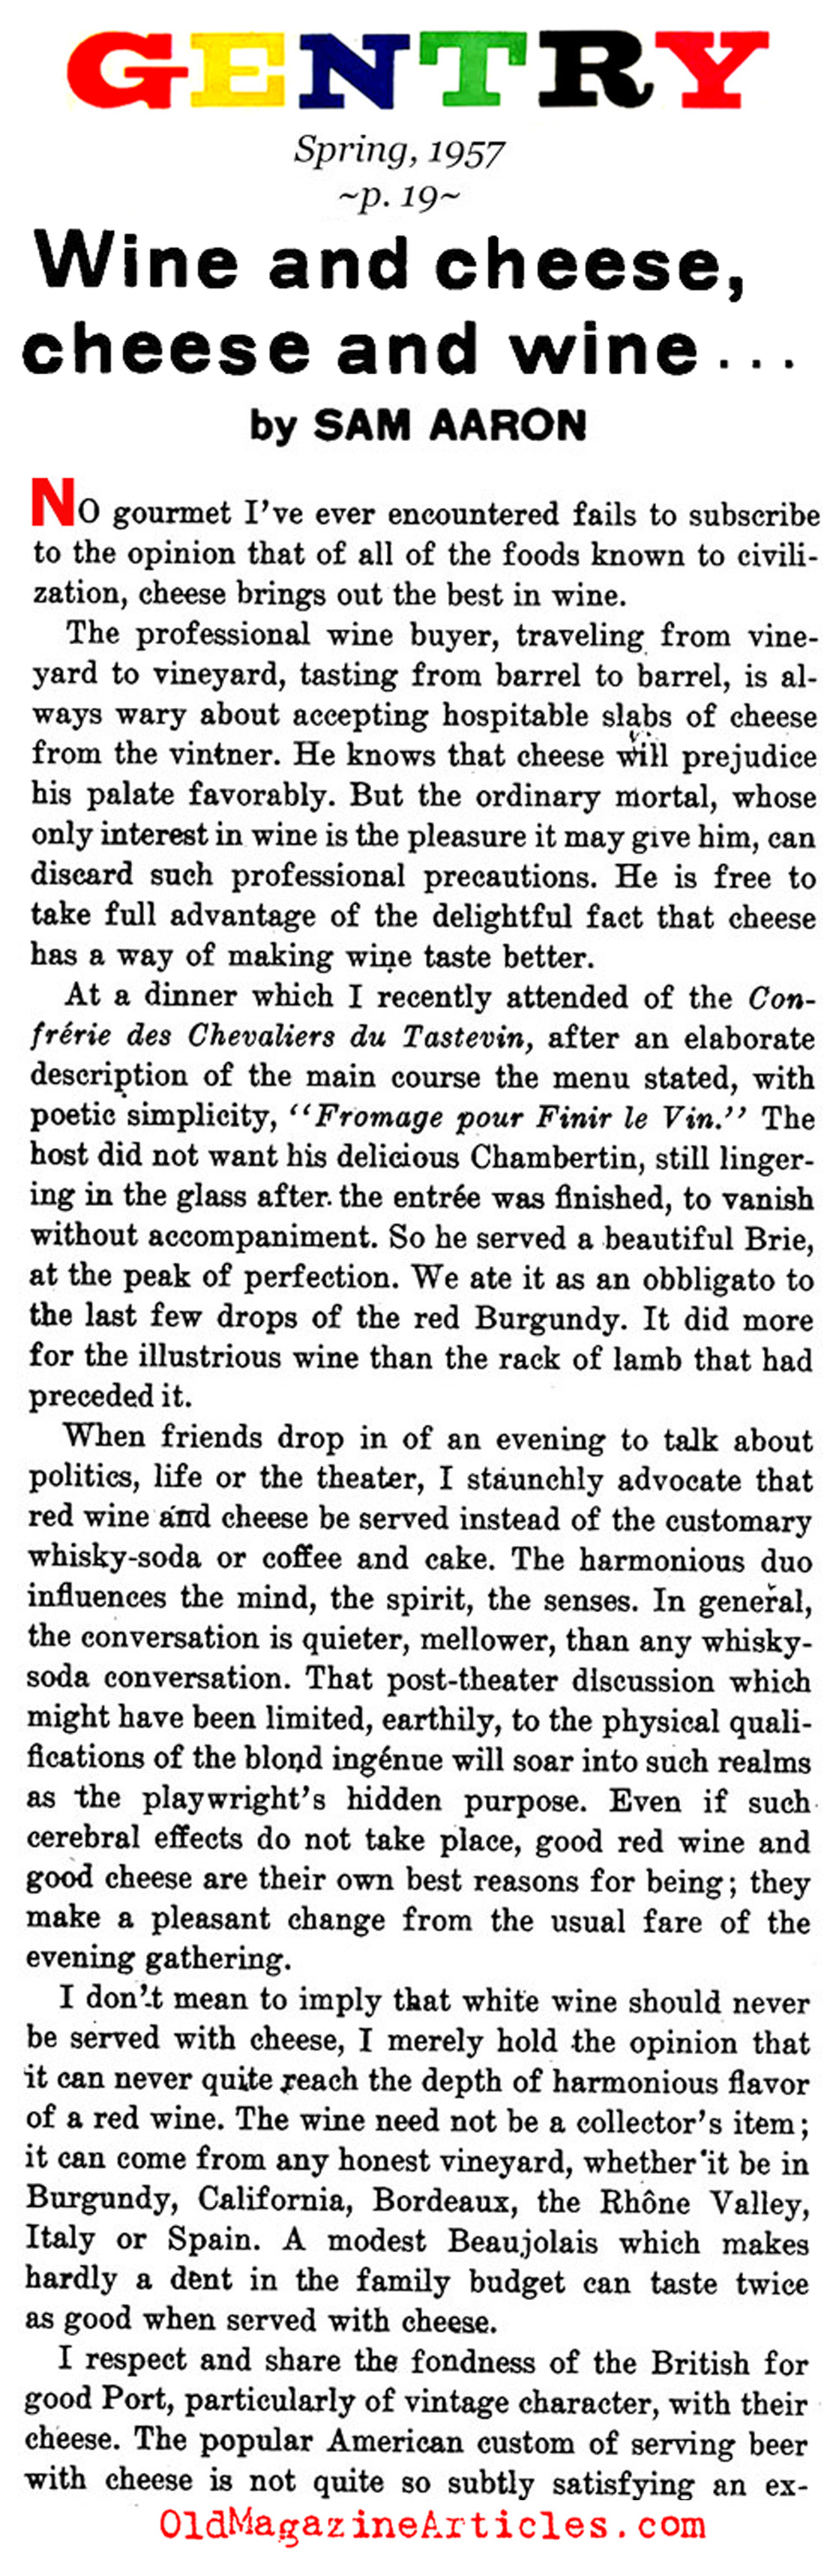 Selecting the Wine and Cheese (Gentry Magazine, 1957)